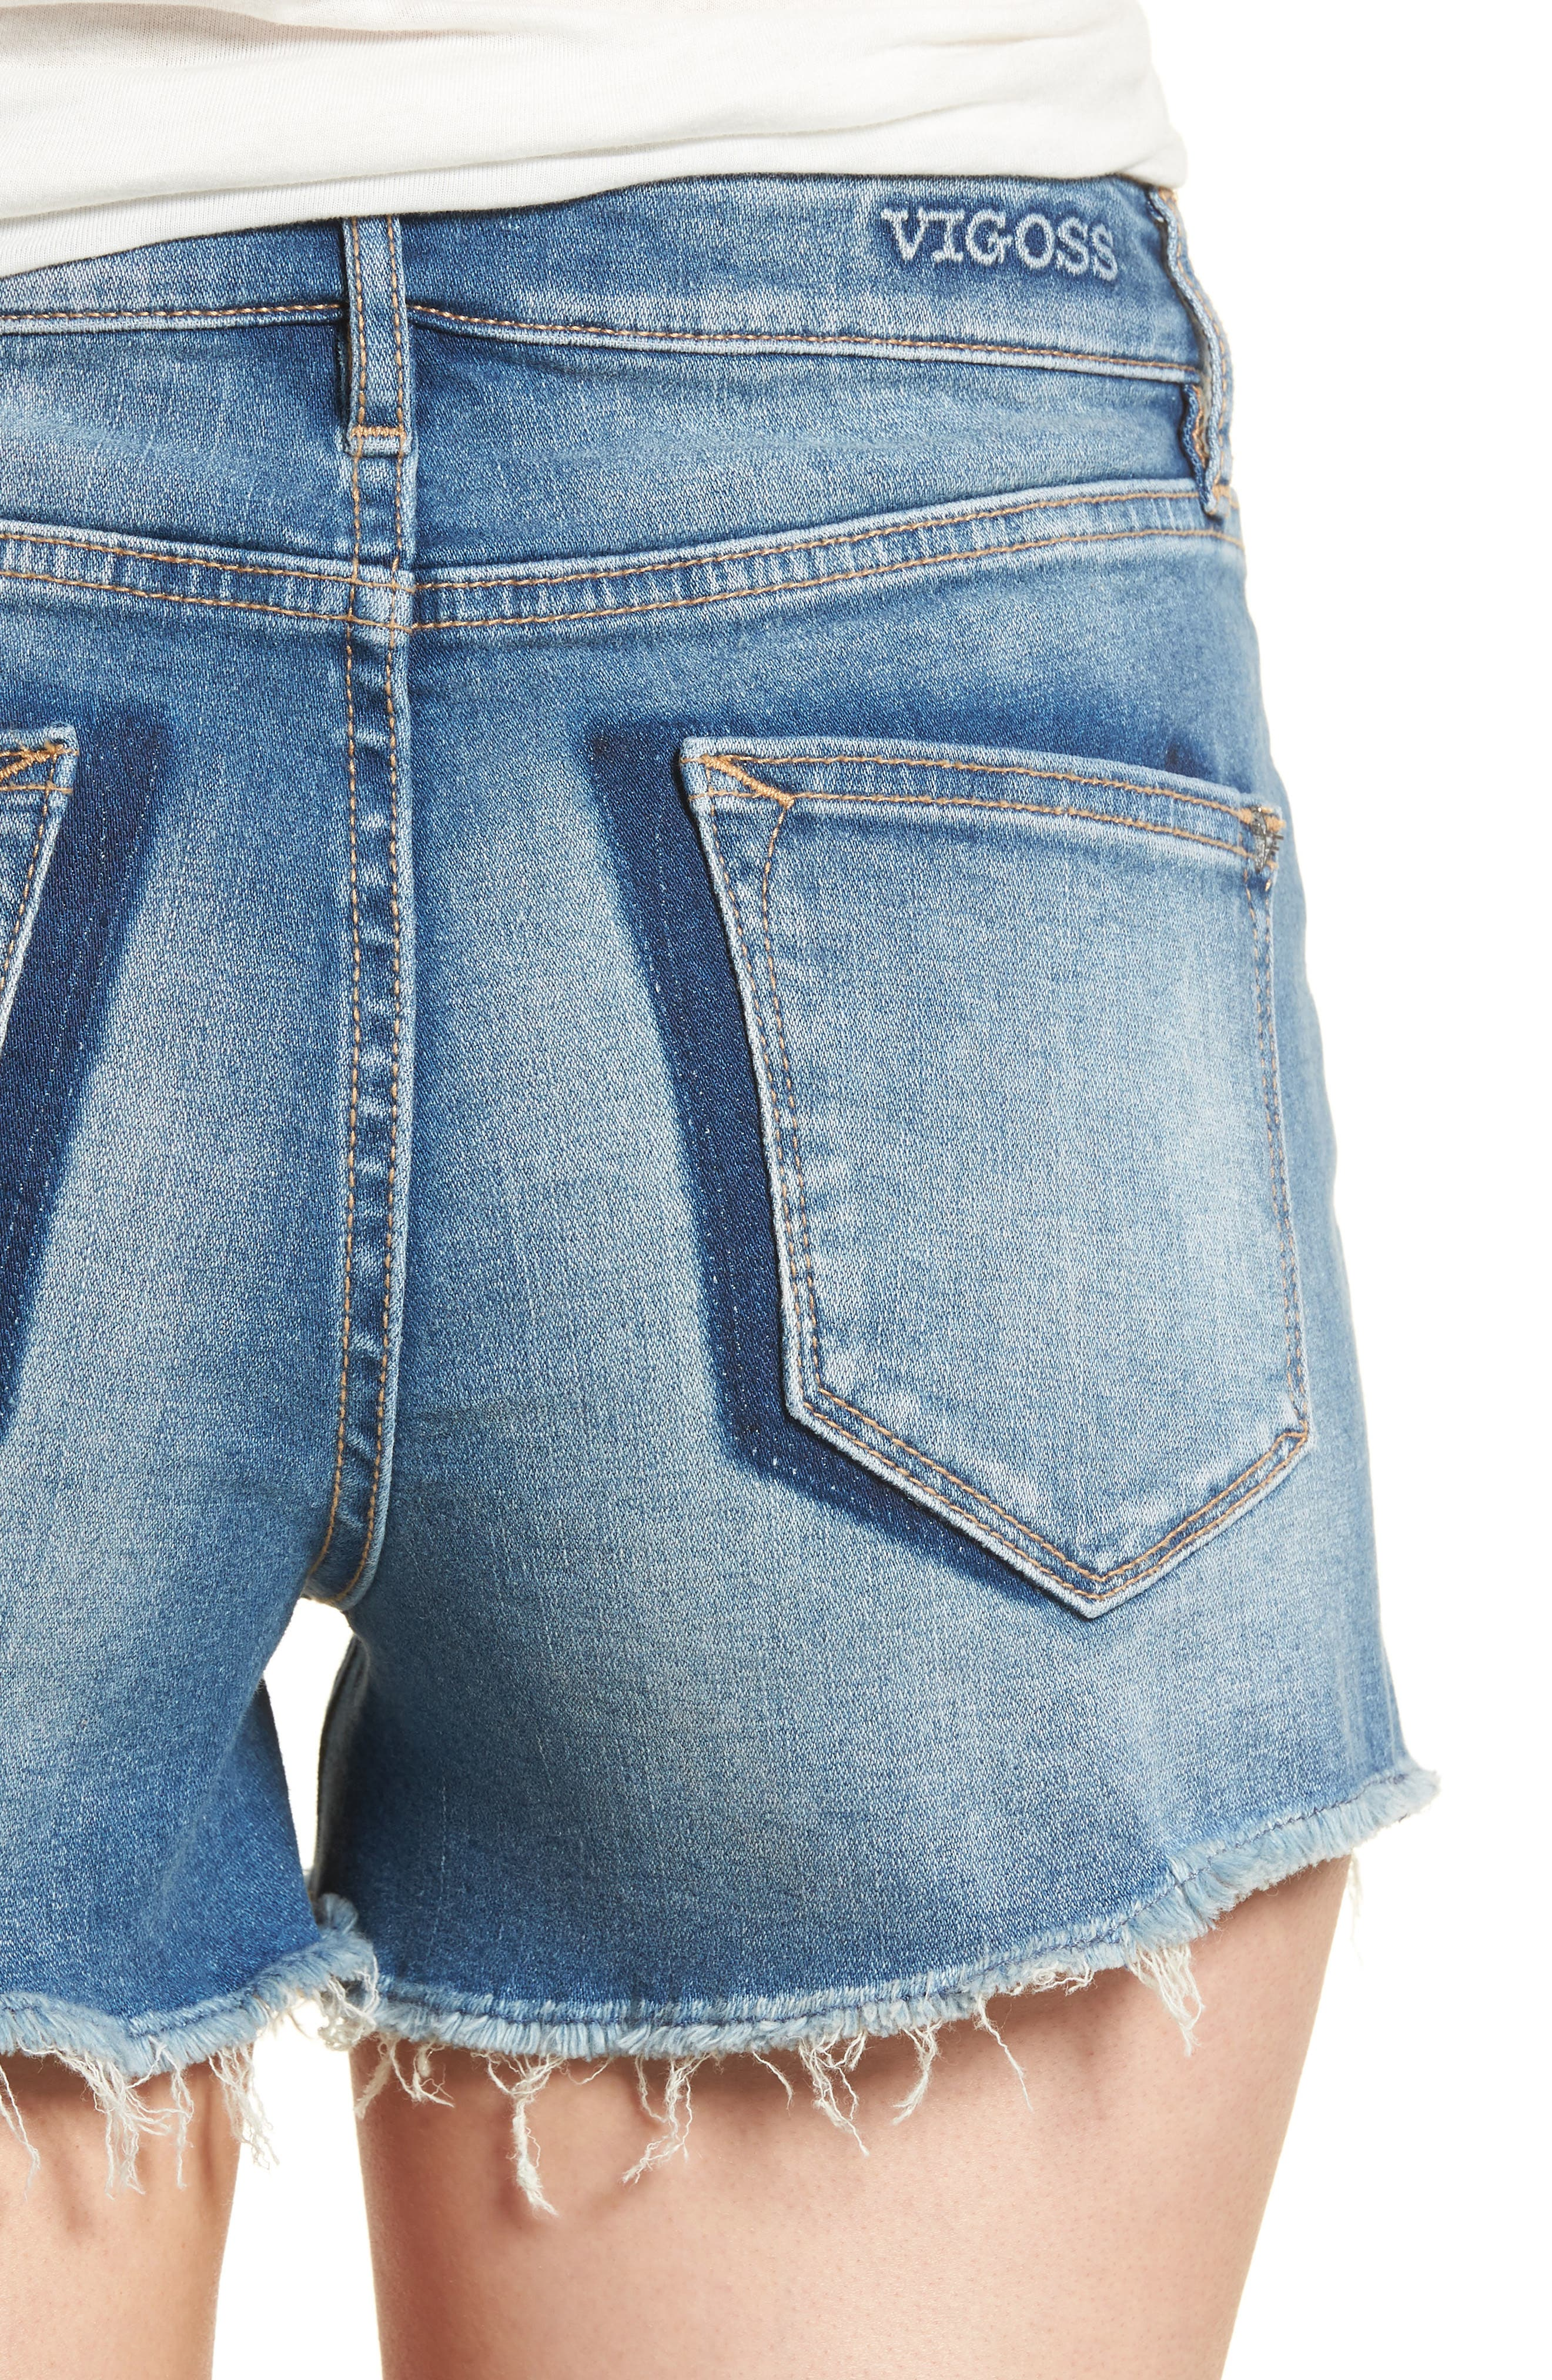 Jagger Shadow Pocket Denim Shorts,                             Alternate thumbnail 4, color,                             461